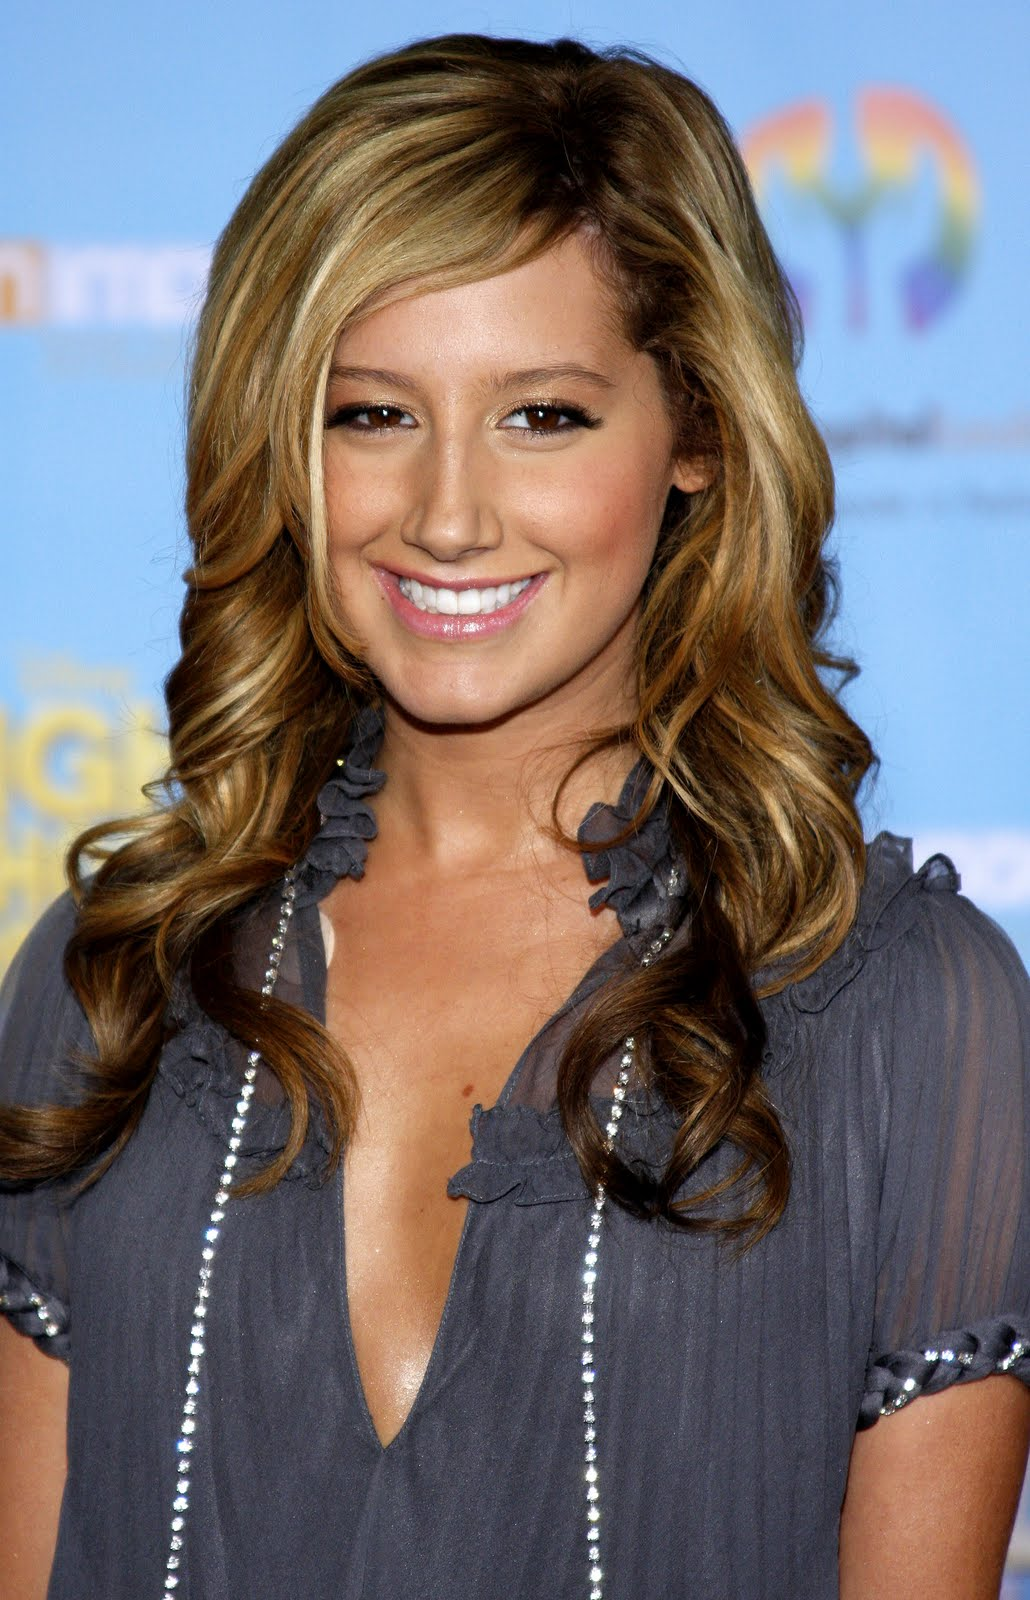 Curly Long Hair, Long Hairstyle 2013, Hairstyle 2013, New Long Hairstyle 2013, Celebrity Long Romance Hairstyles 2048